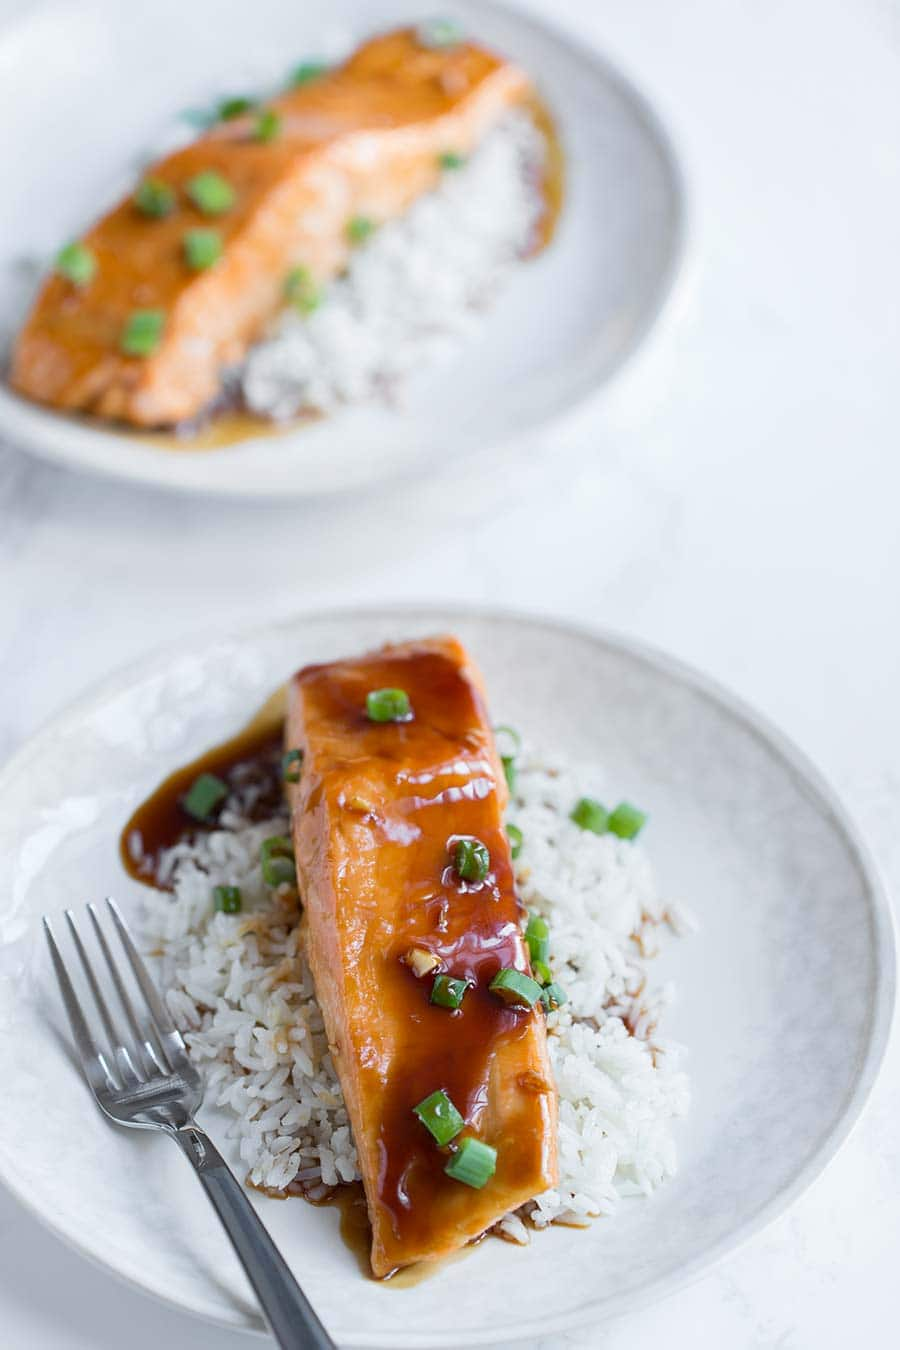 Salmon Teriyaki is an easy dinner that comes together in no time. The homemade teriyaki sauce is fast, with only a few simple ingredients!